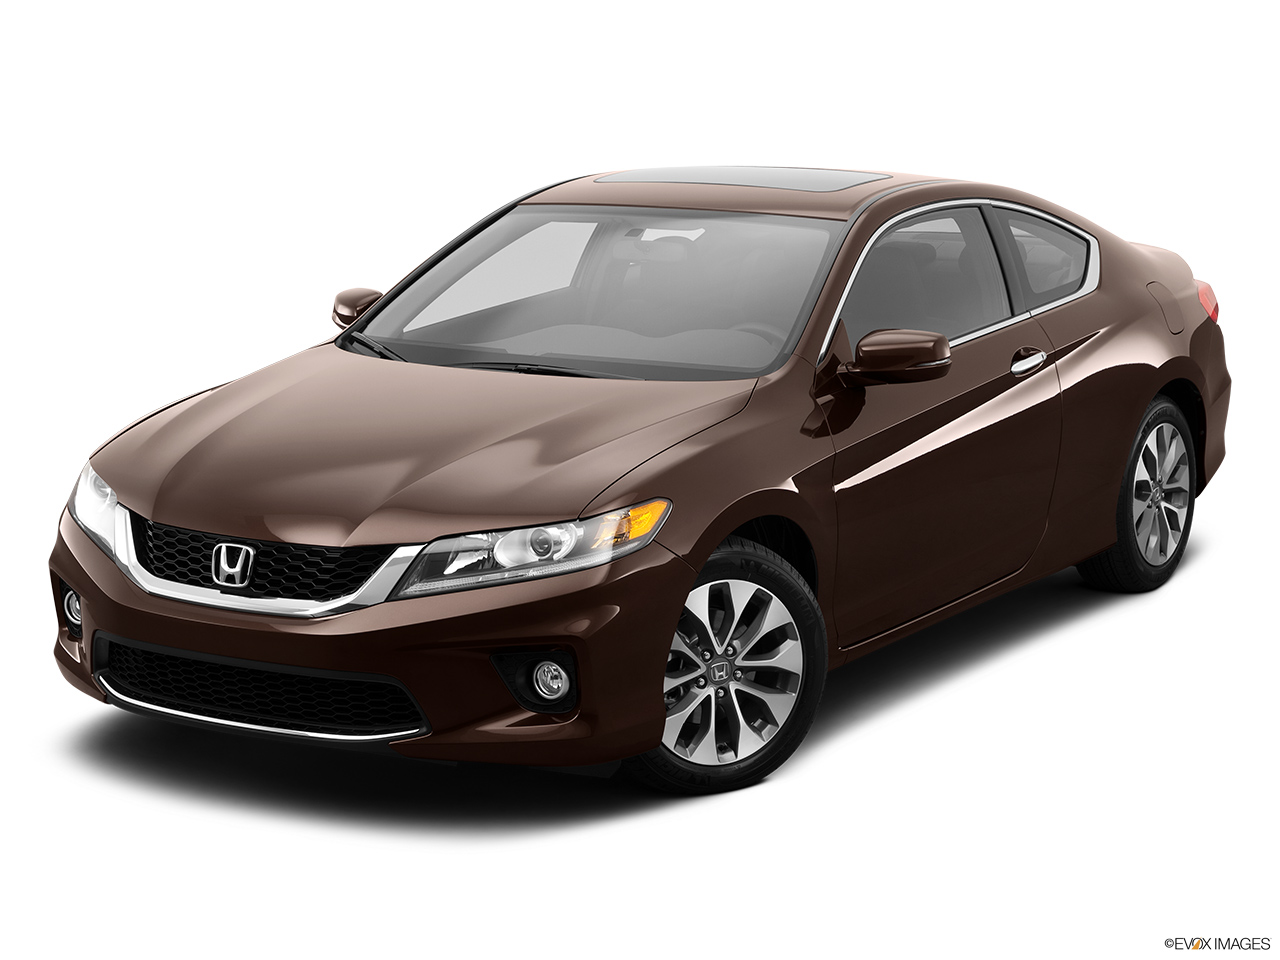 2014 honda accord coupe 2 door i4 cvt ex. Black Bedroom Furniture Sets. Home Design Ideas